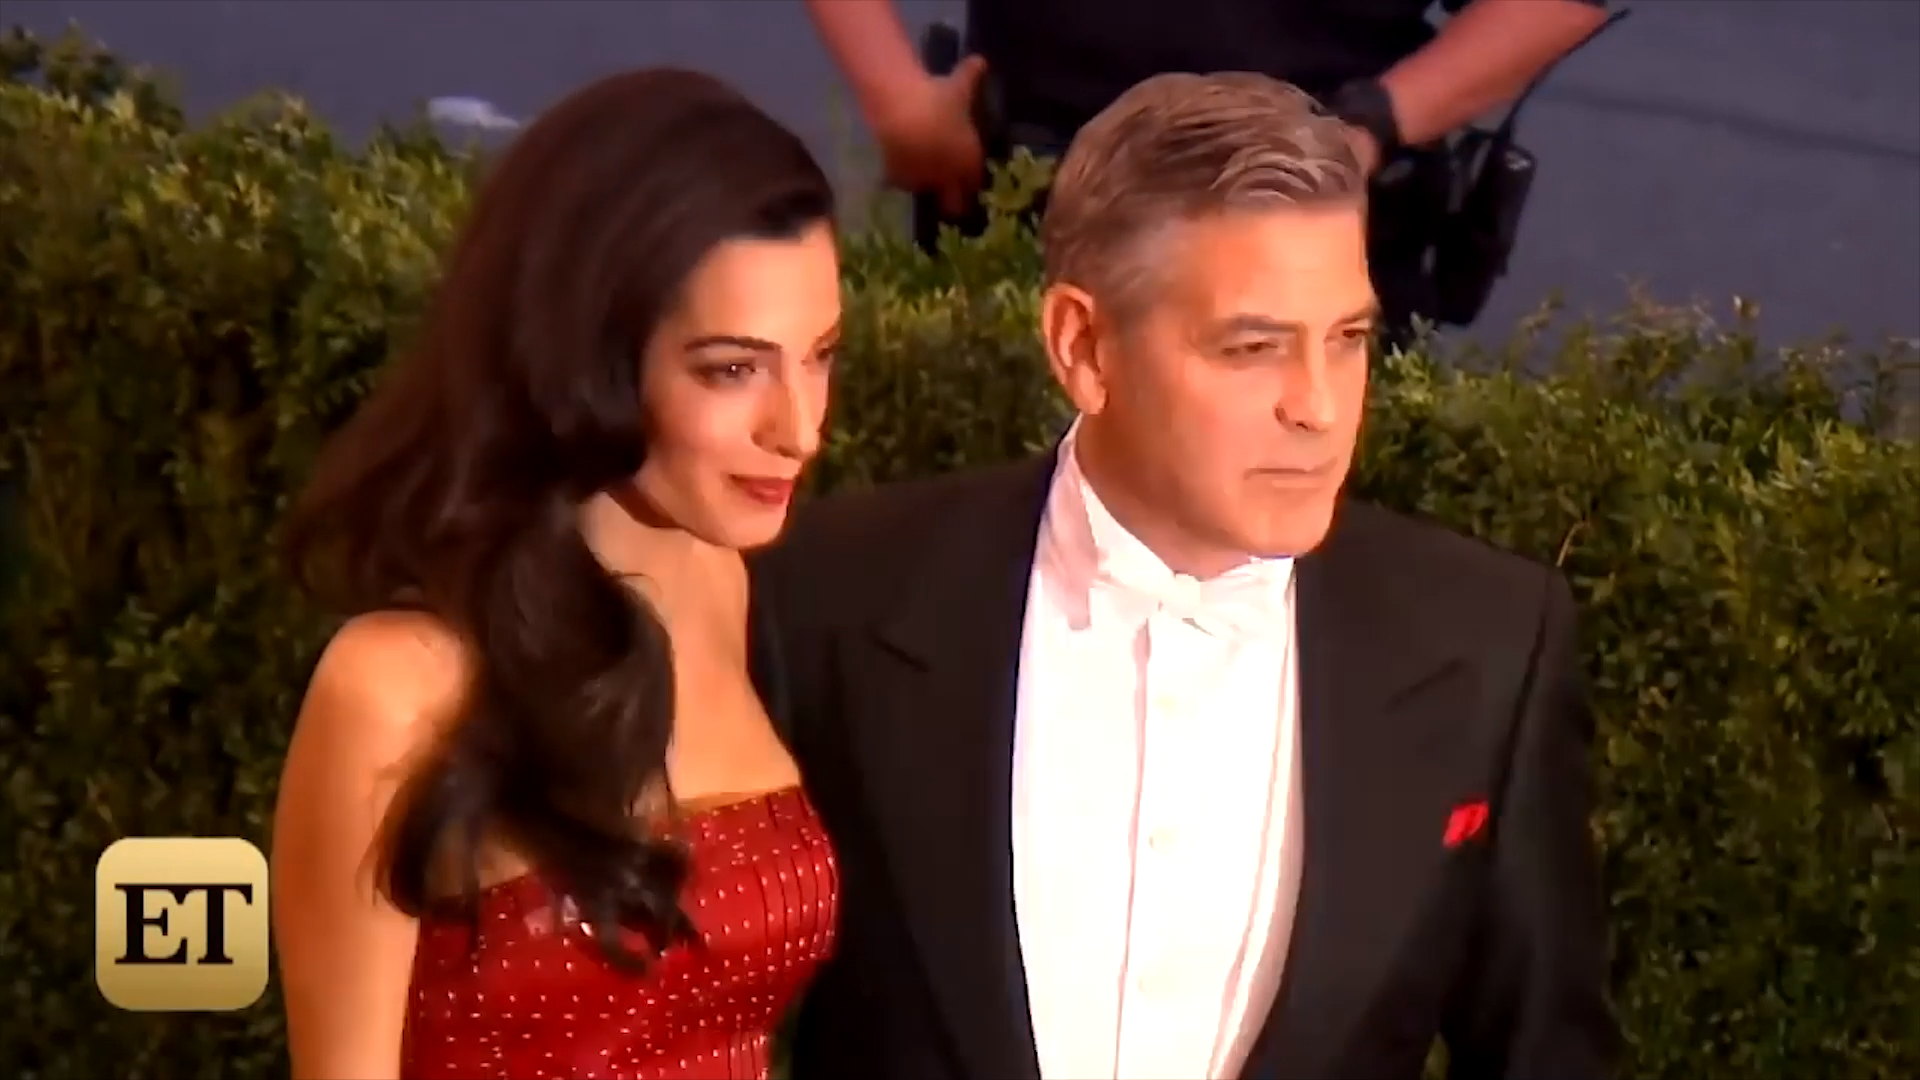 George Clooney reveals why he fell in love with wife Amal Clooney